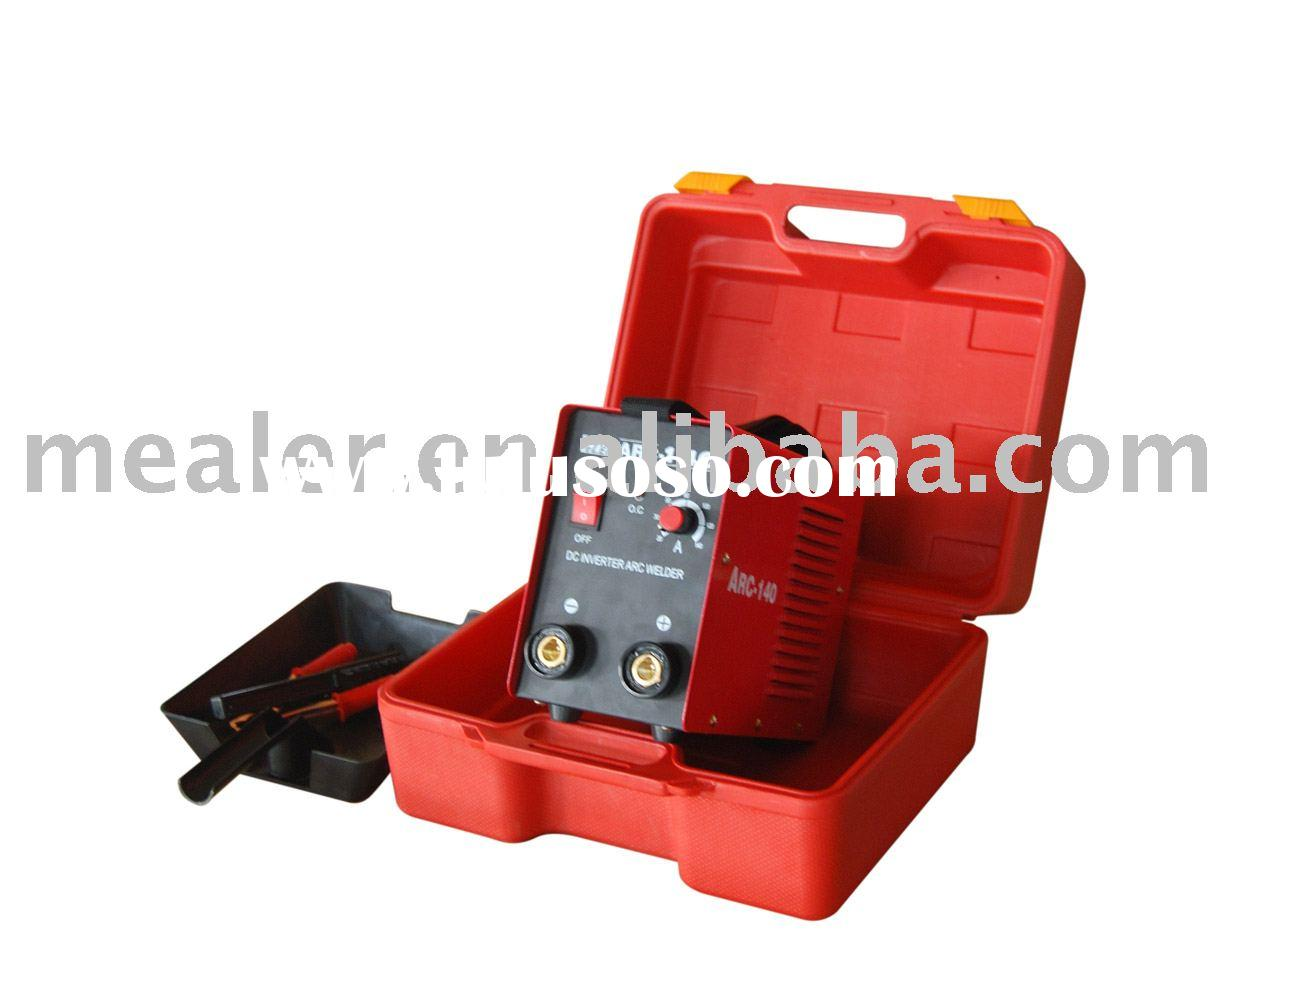 ARC-140 Inverter DC MMA portable welding machinery(with case)